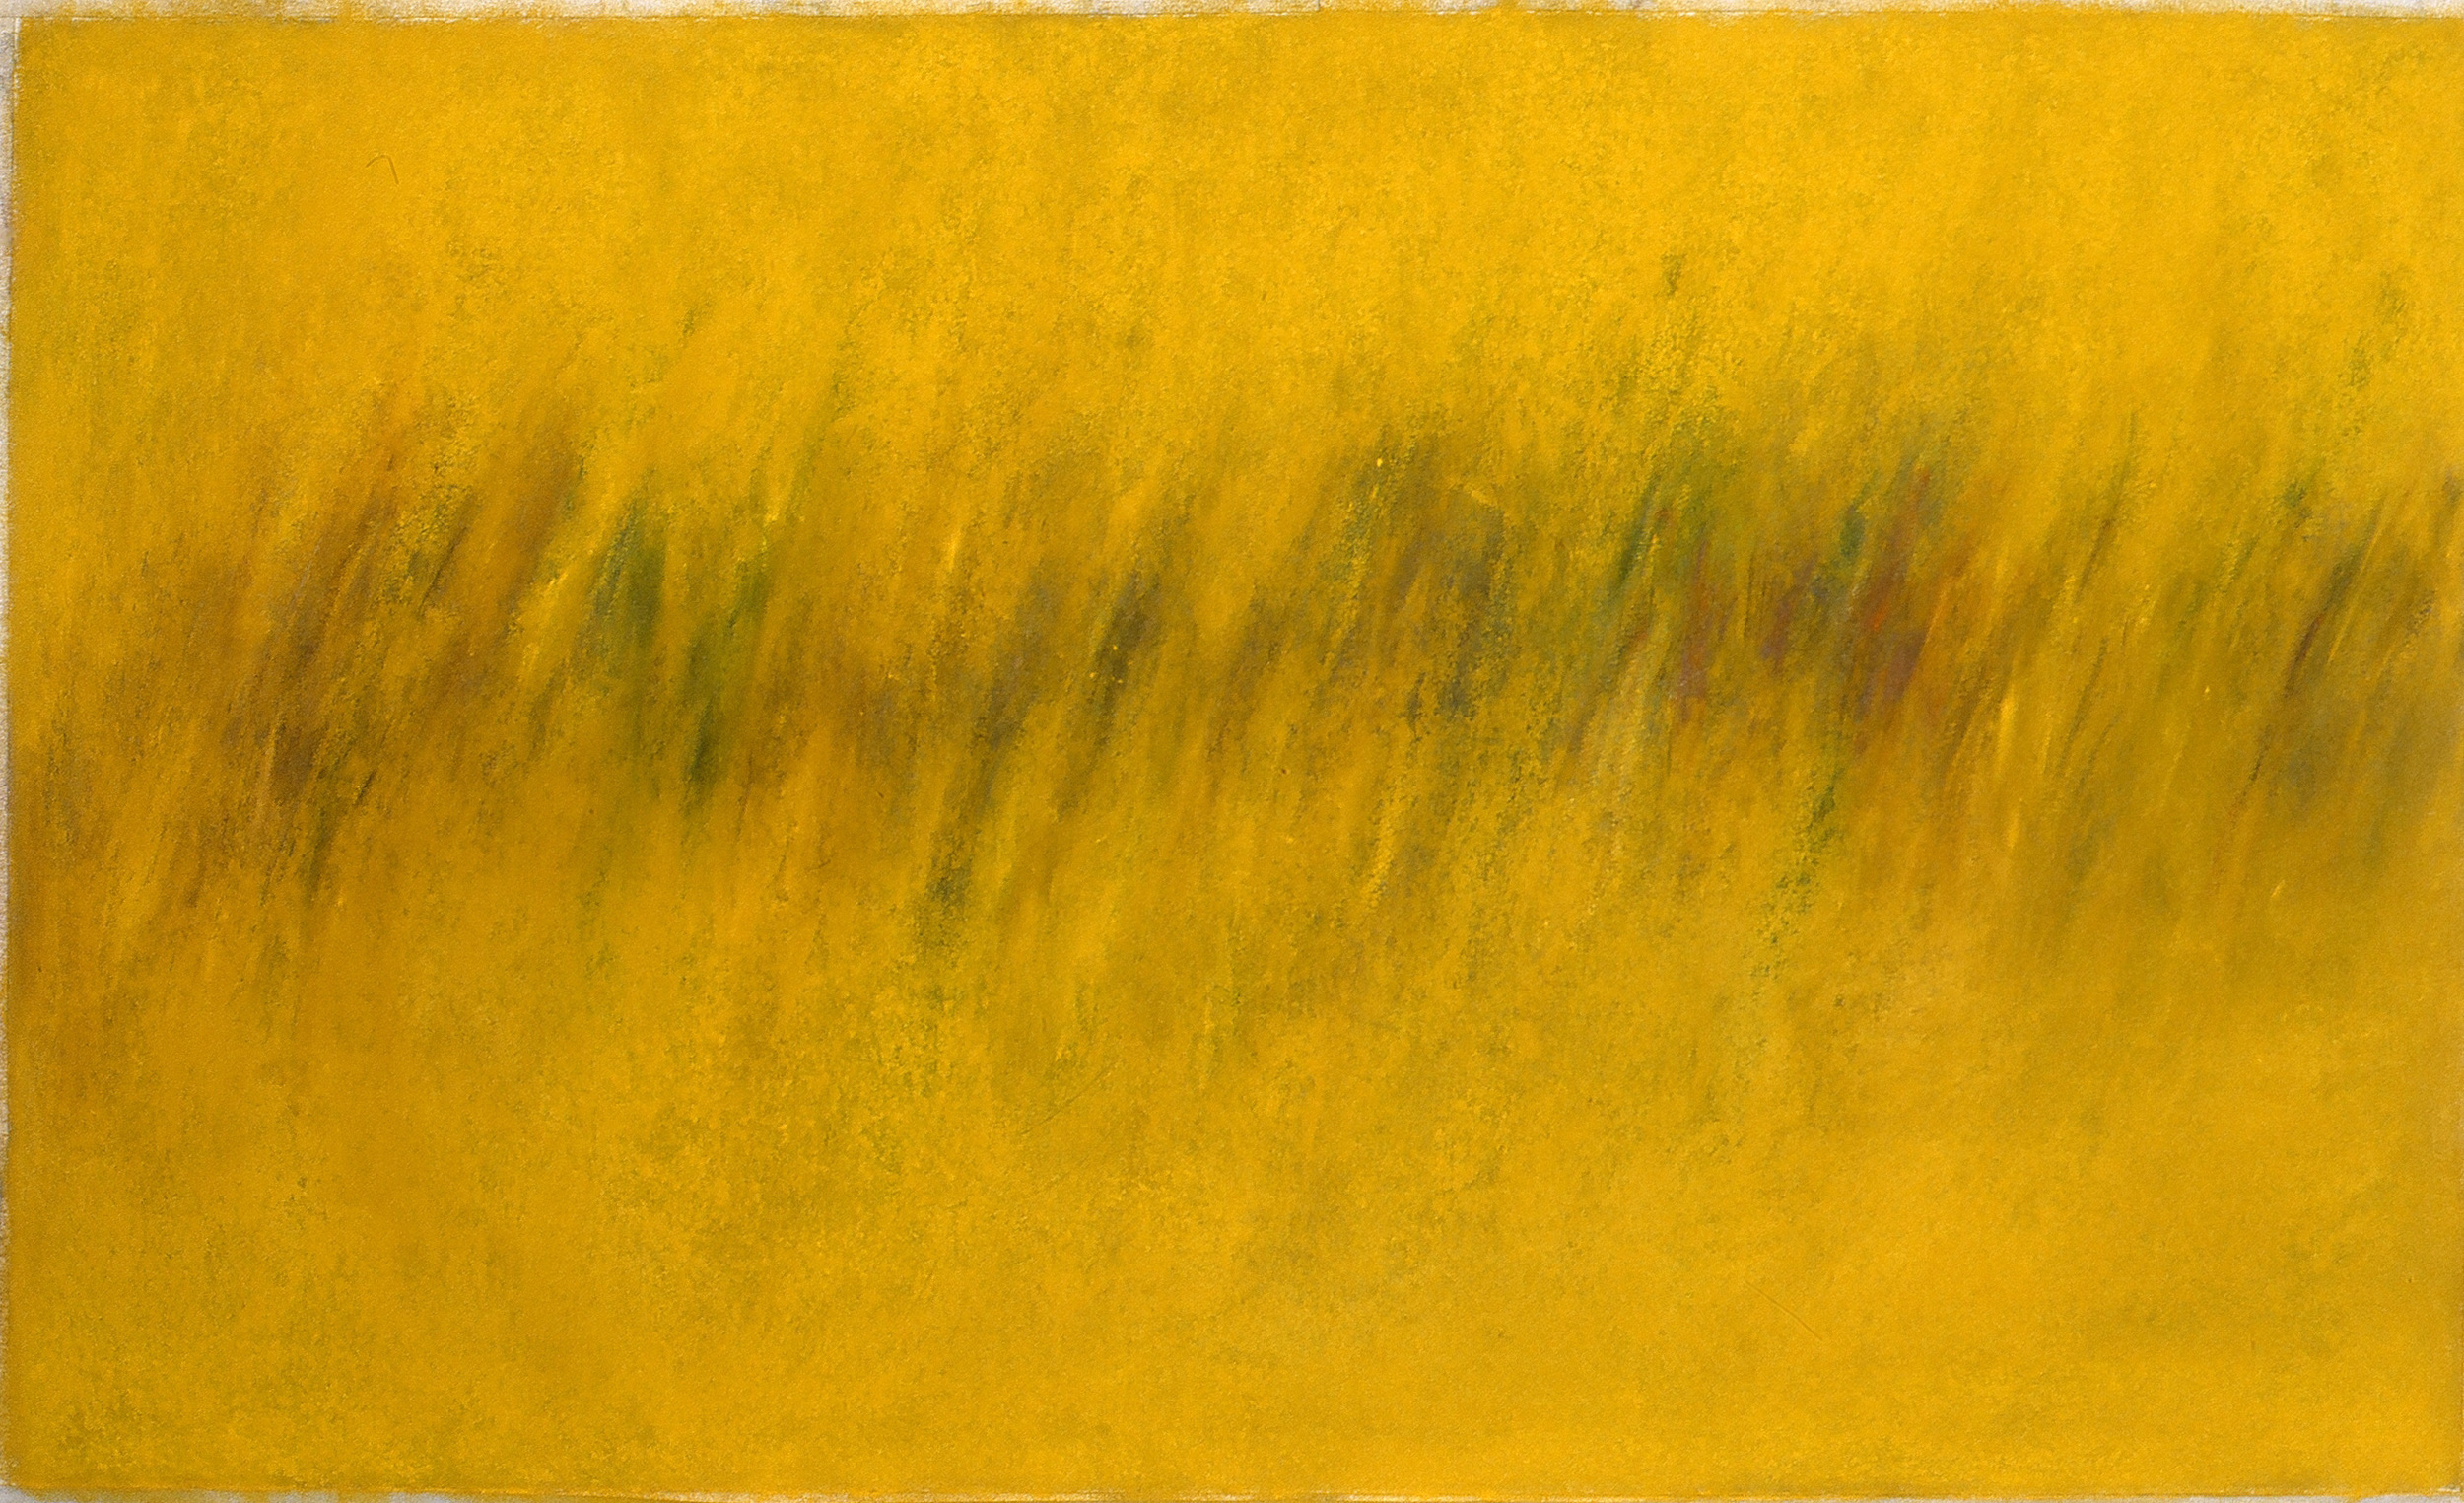 "Yellow Field 3*  22"" x 36"" Pastel on paper 2001   * Collection of Thompson Financial"